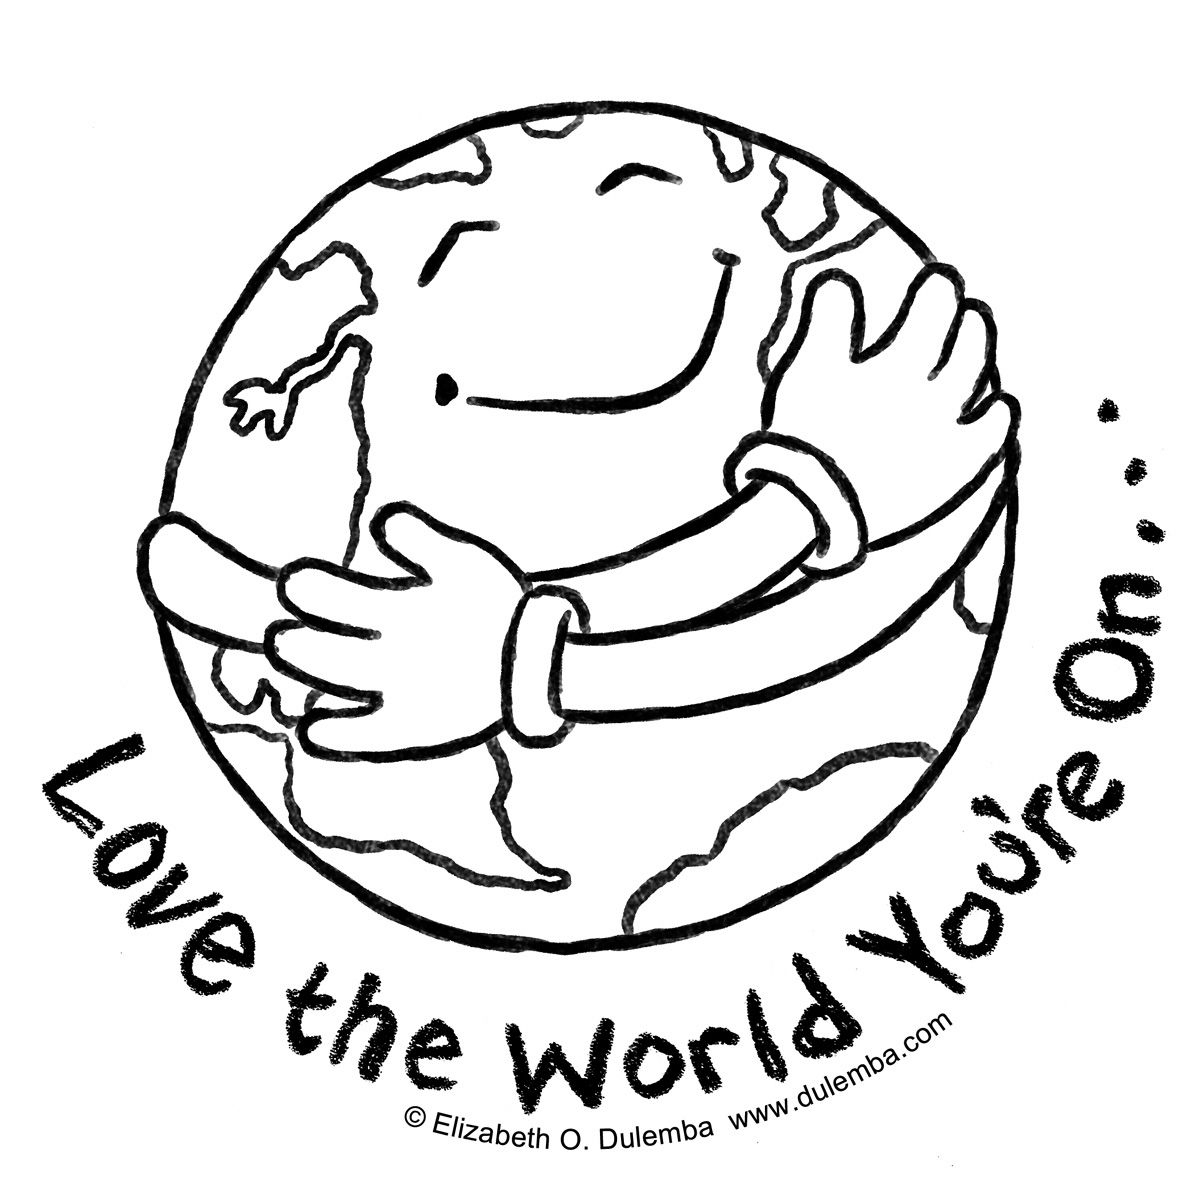 Children Aroun Kids Around The World Coloring Pages - Earth Coloring Pages Free Printable